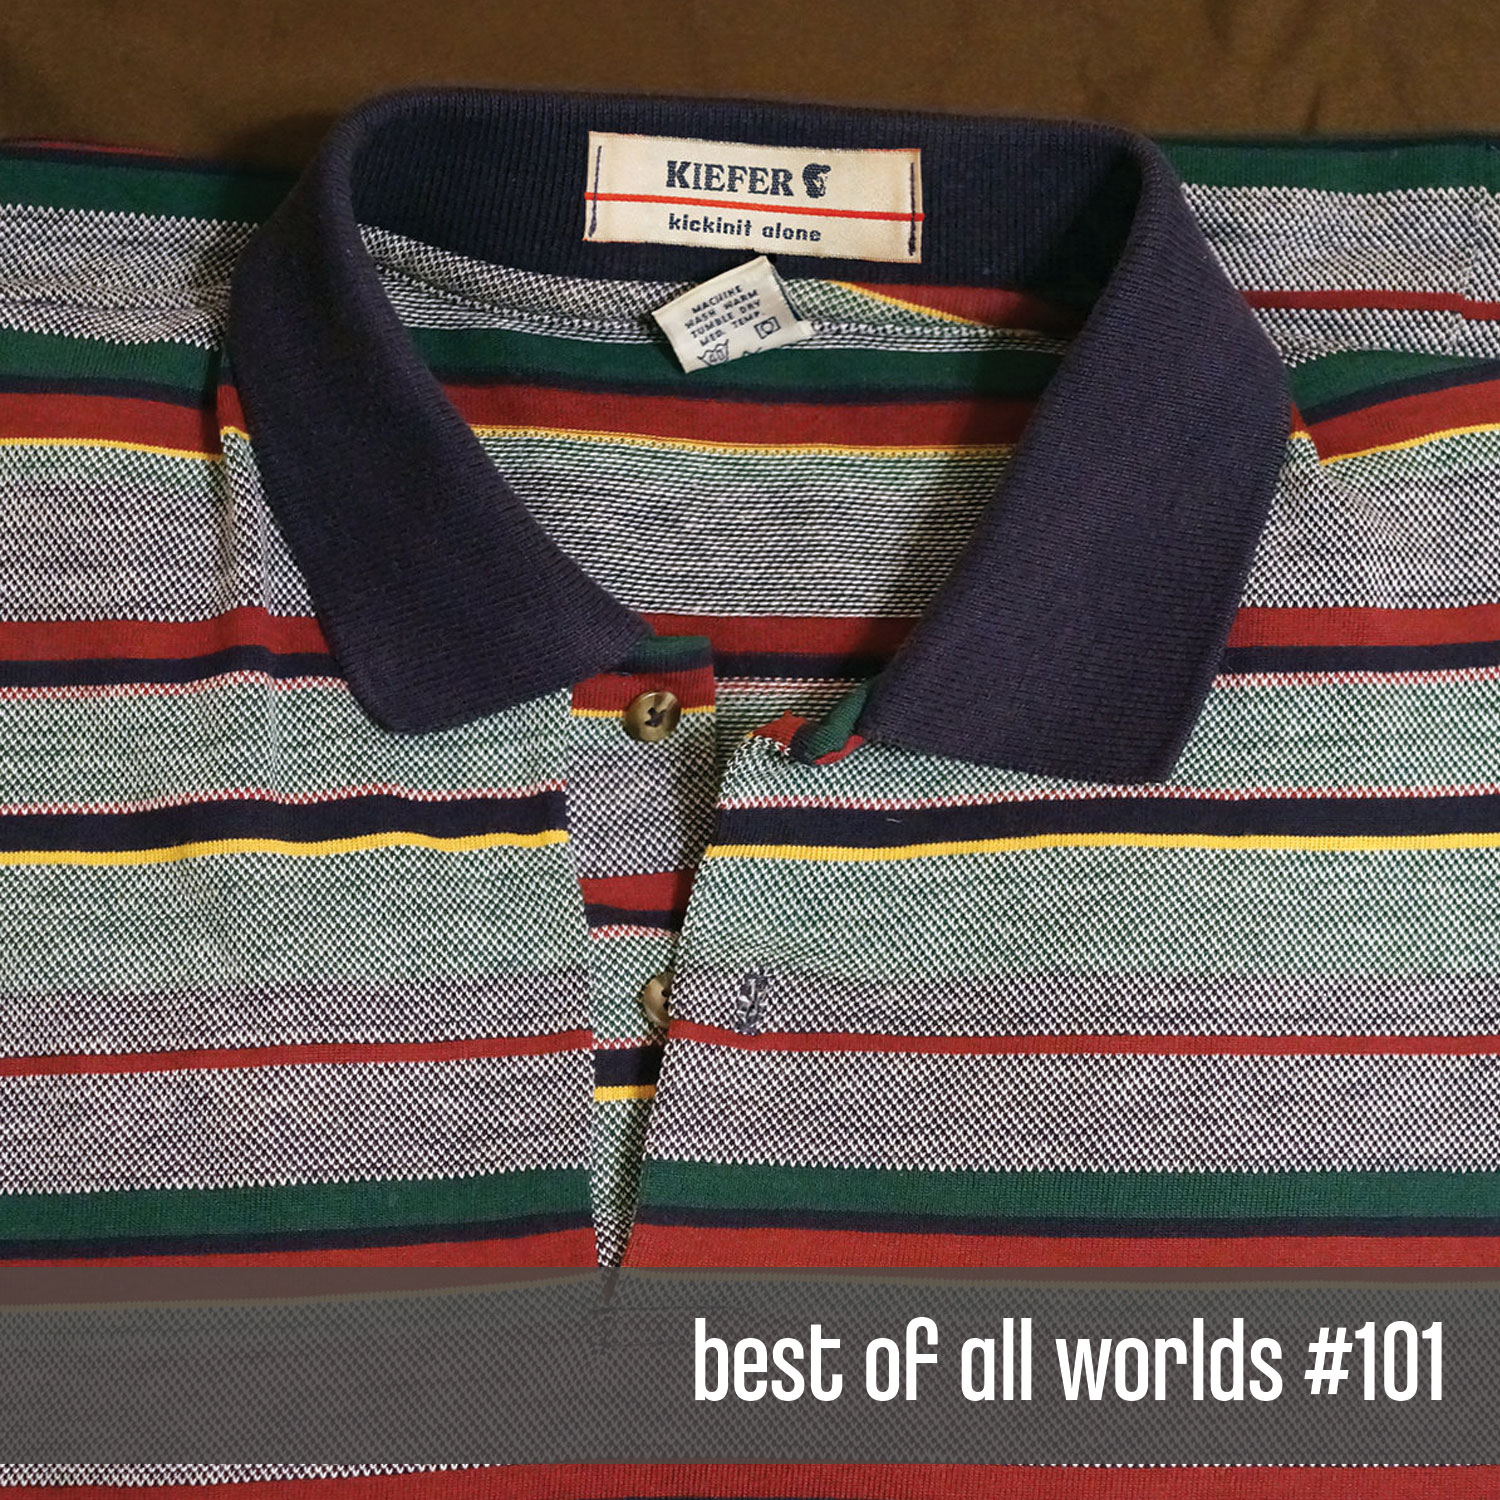 best of all worlds #101